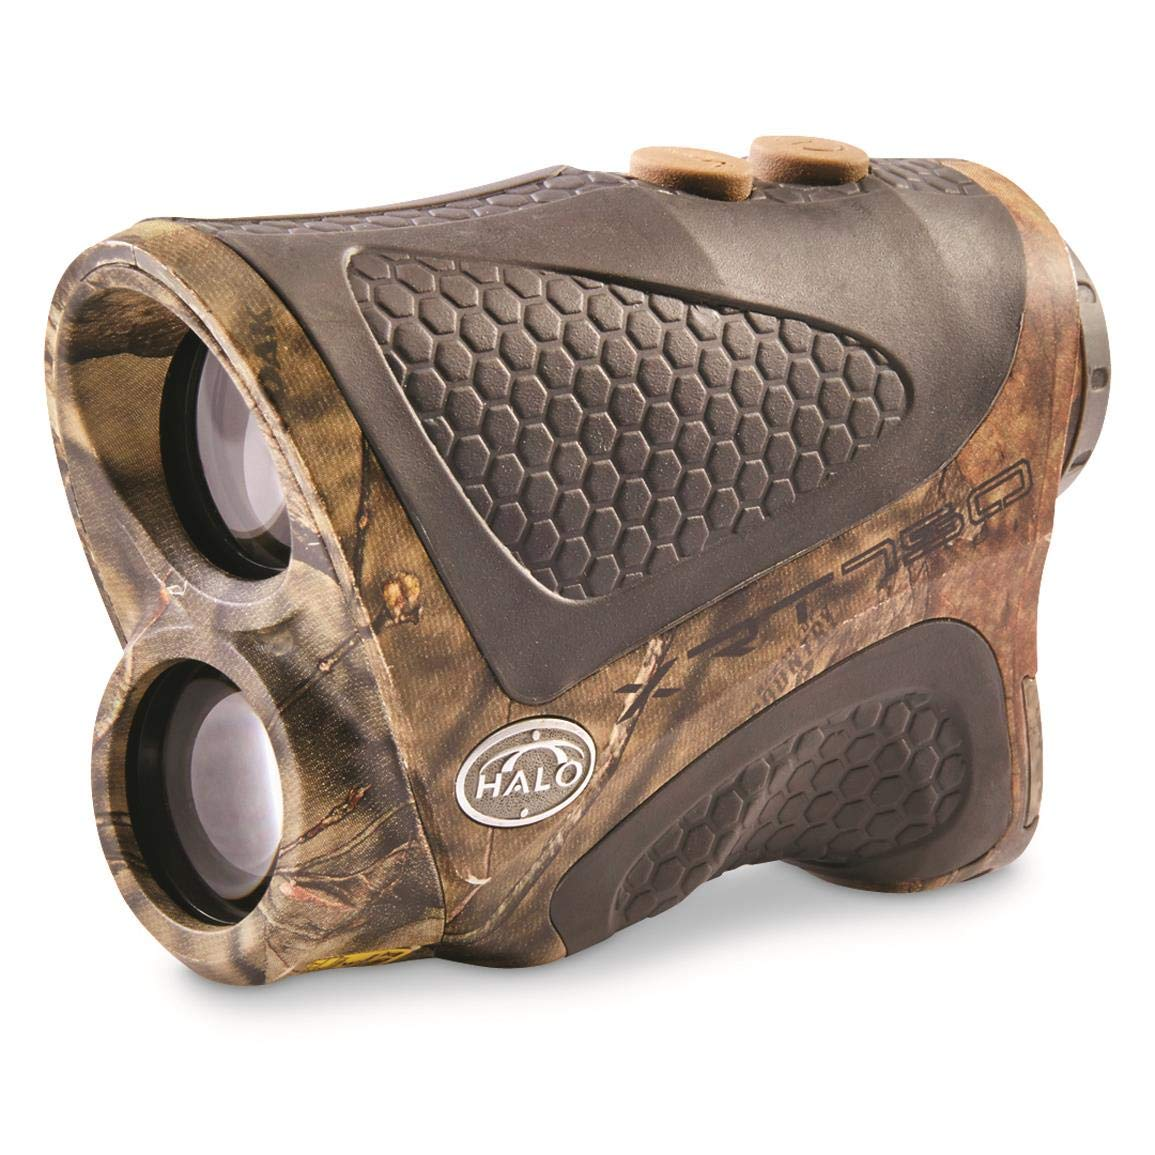 Halo XRT 750 Yard Laser Rangefinder, Mossy Oak Break-Up Country Camo by Halo